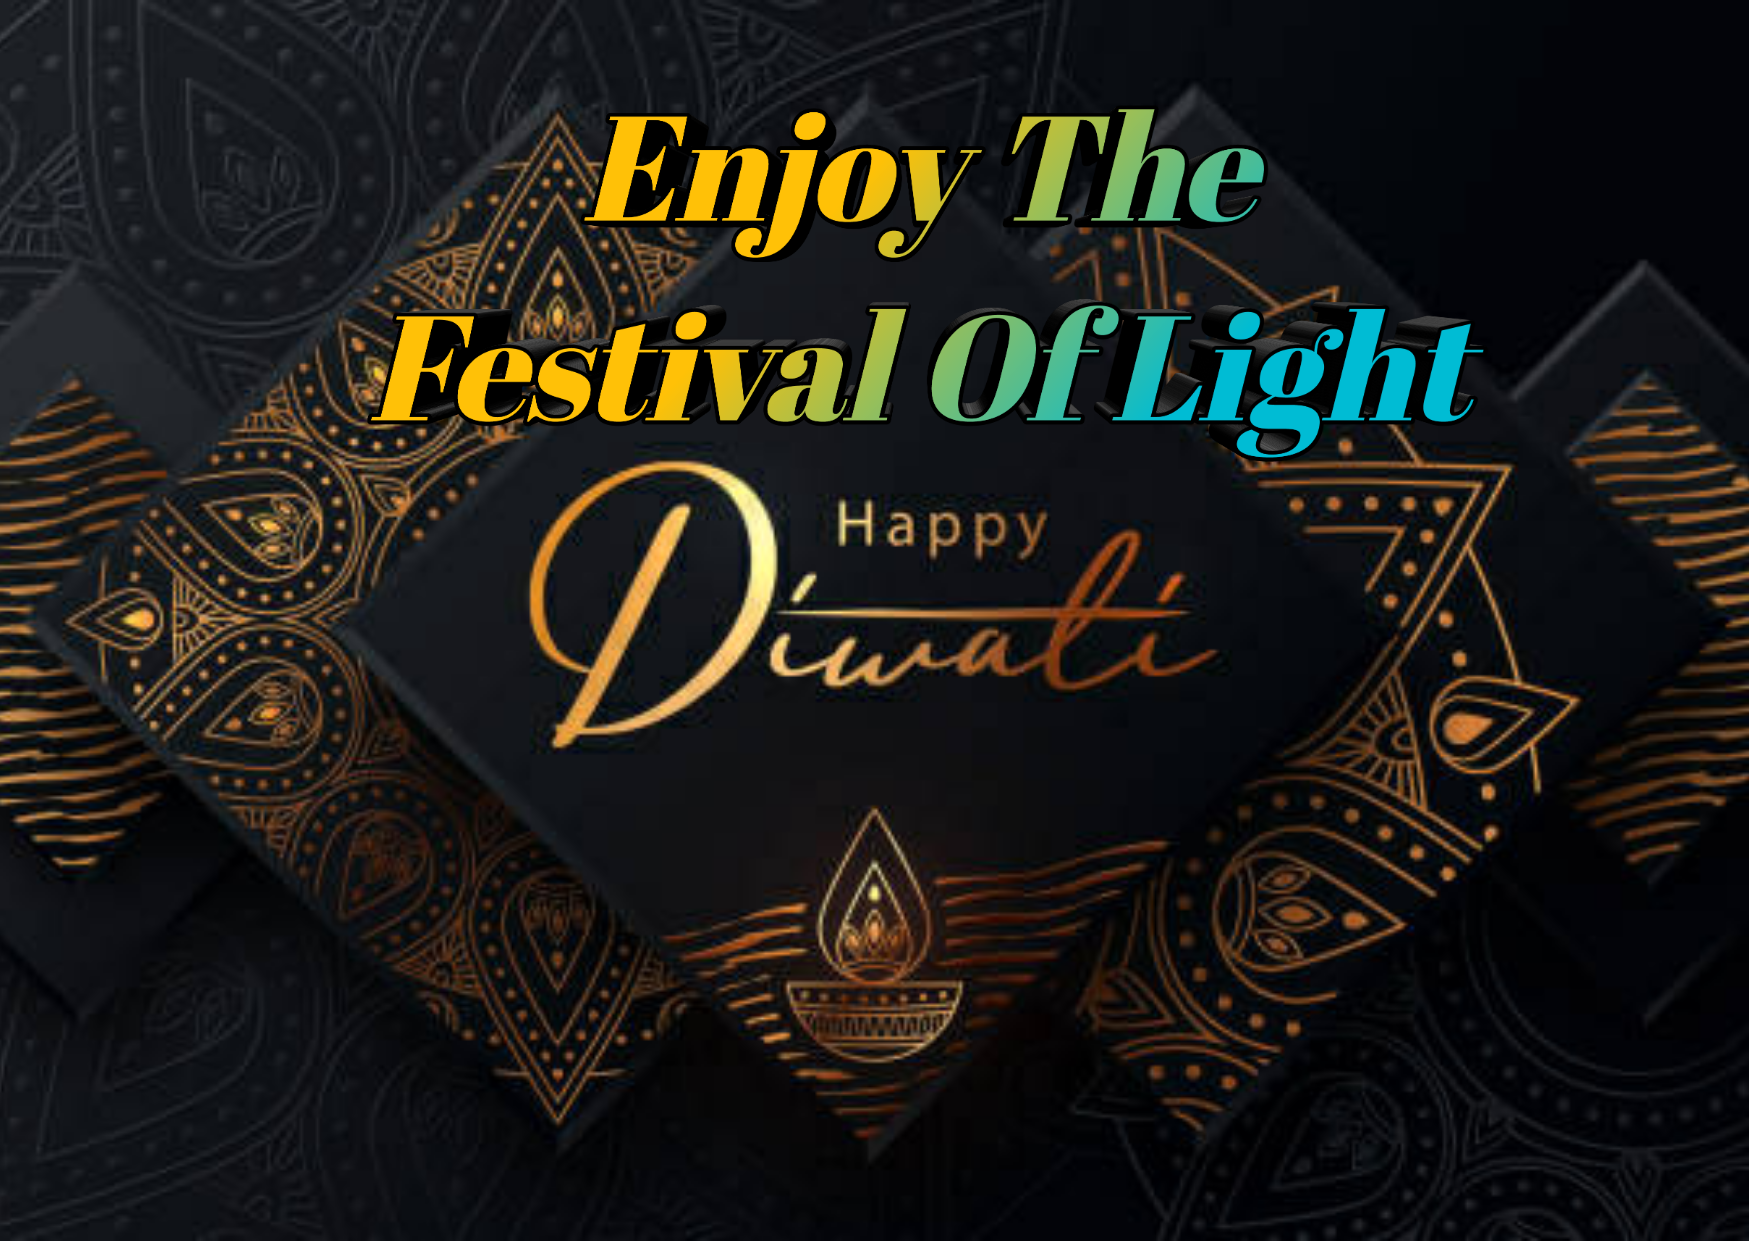 Happy Diwali Wishes 2021 Images, quotes, status, greeting for whatsapp free download,